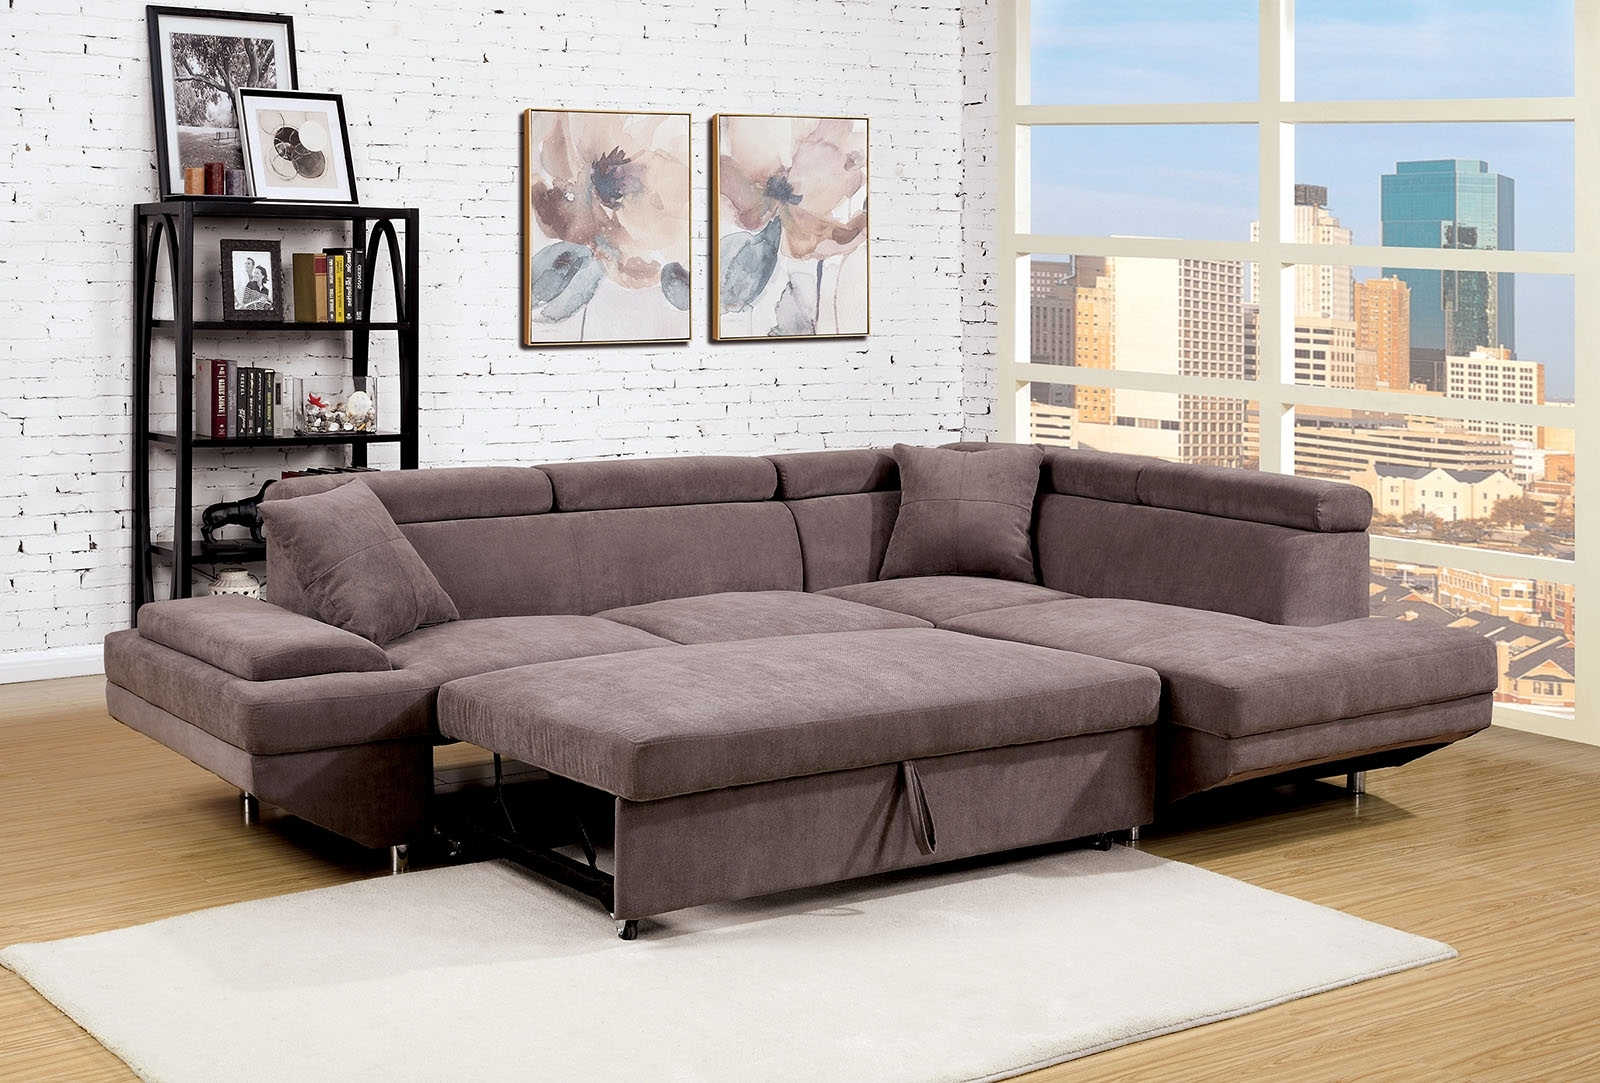 Recent Adjustable Sectional Sofas With Queen Bed With Foreman Contemporary Style Brown Flannelette Fabric Pull Out (View 16 of 20)